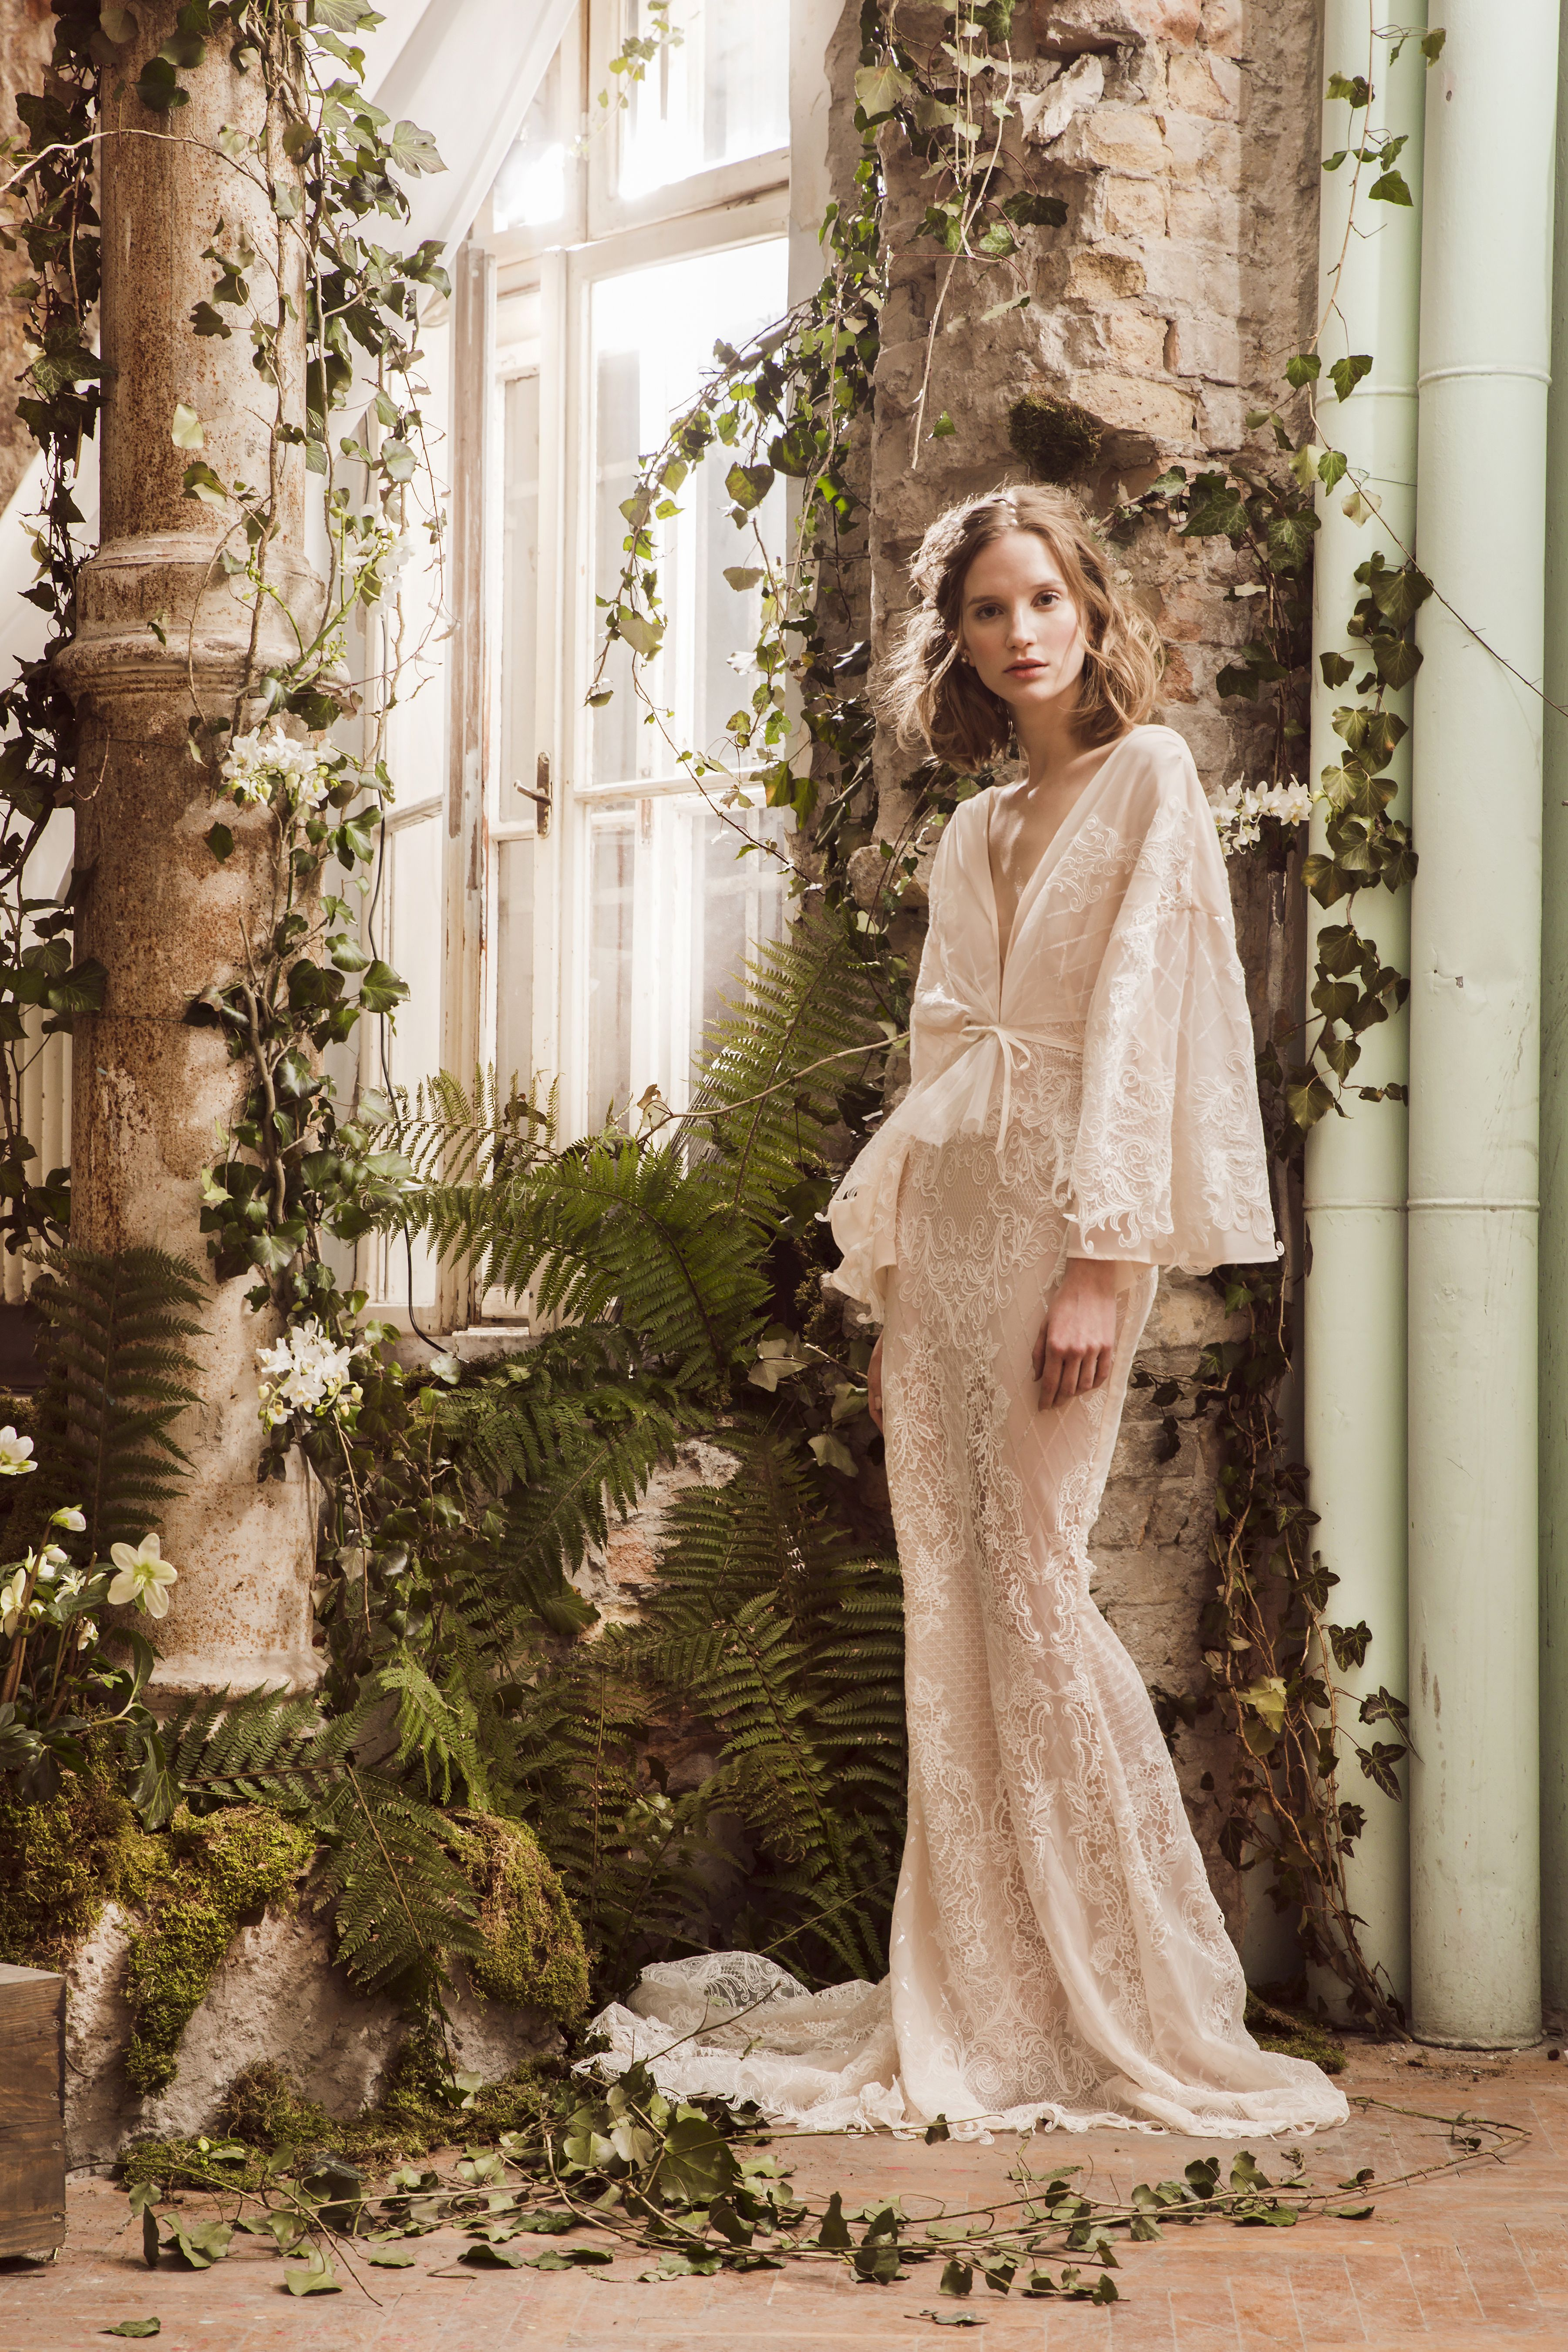 Ana Acimovic 15 best ines bridal haute couture 2018/19 images | fashion